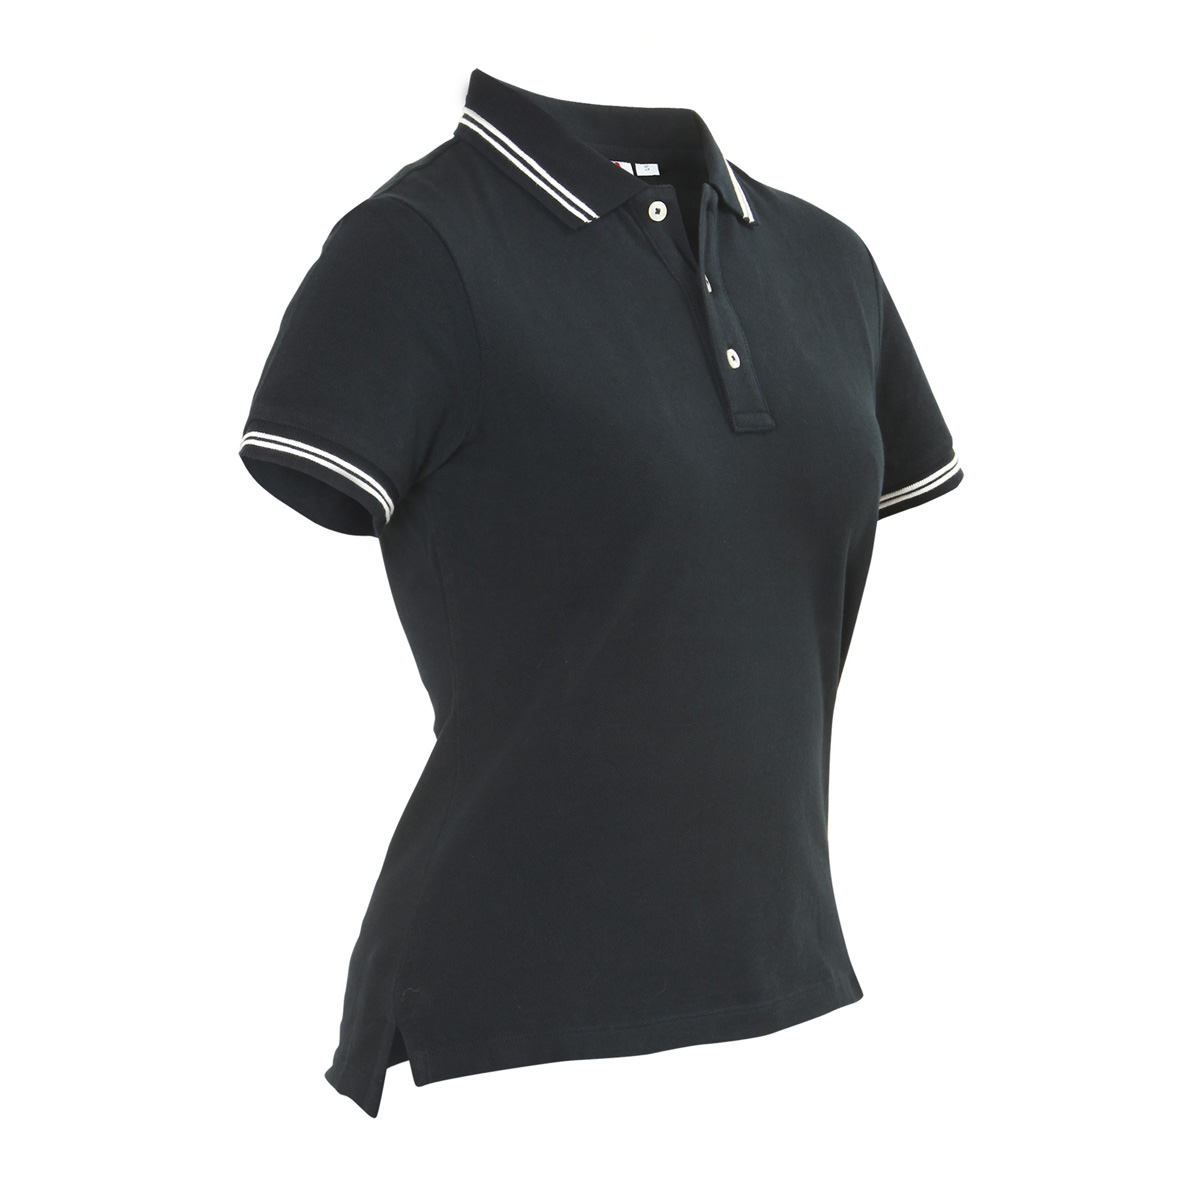 Polo Regata - woman - navy